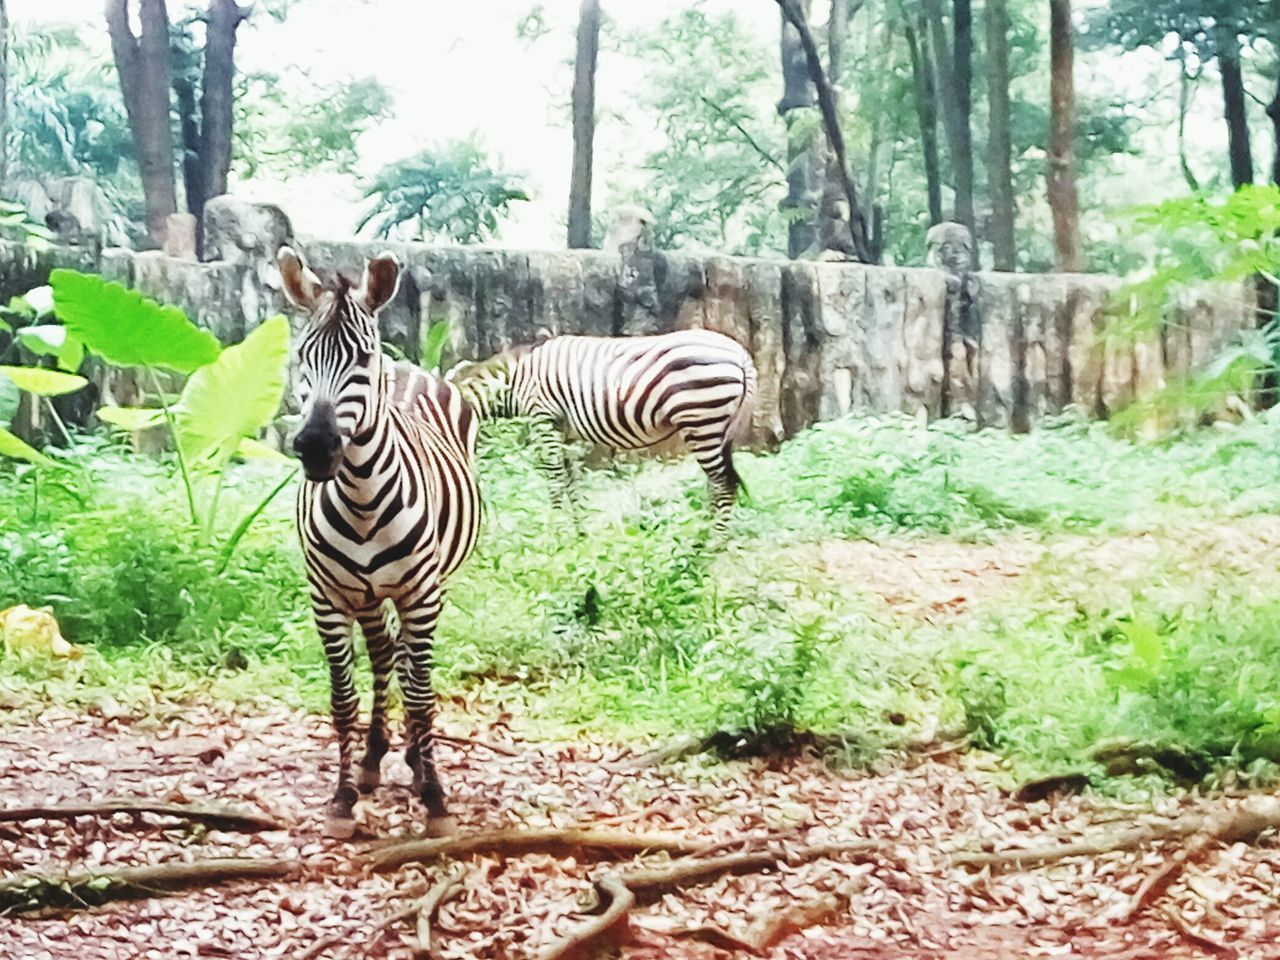 Zebra Striped Zebra Animals In The Wild Mammal Animal Wildlife Animal Themes Tree Outdoors Standing Nature Day No People Growth Animal Markings INDONESIA Beauty In Nature